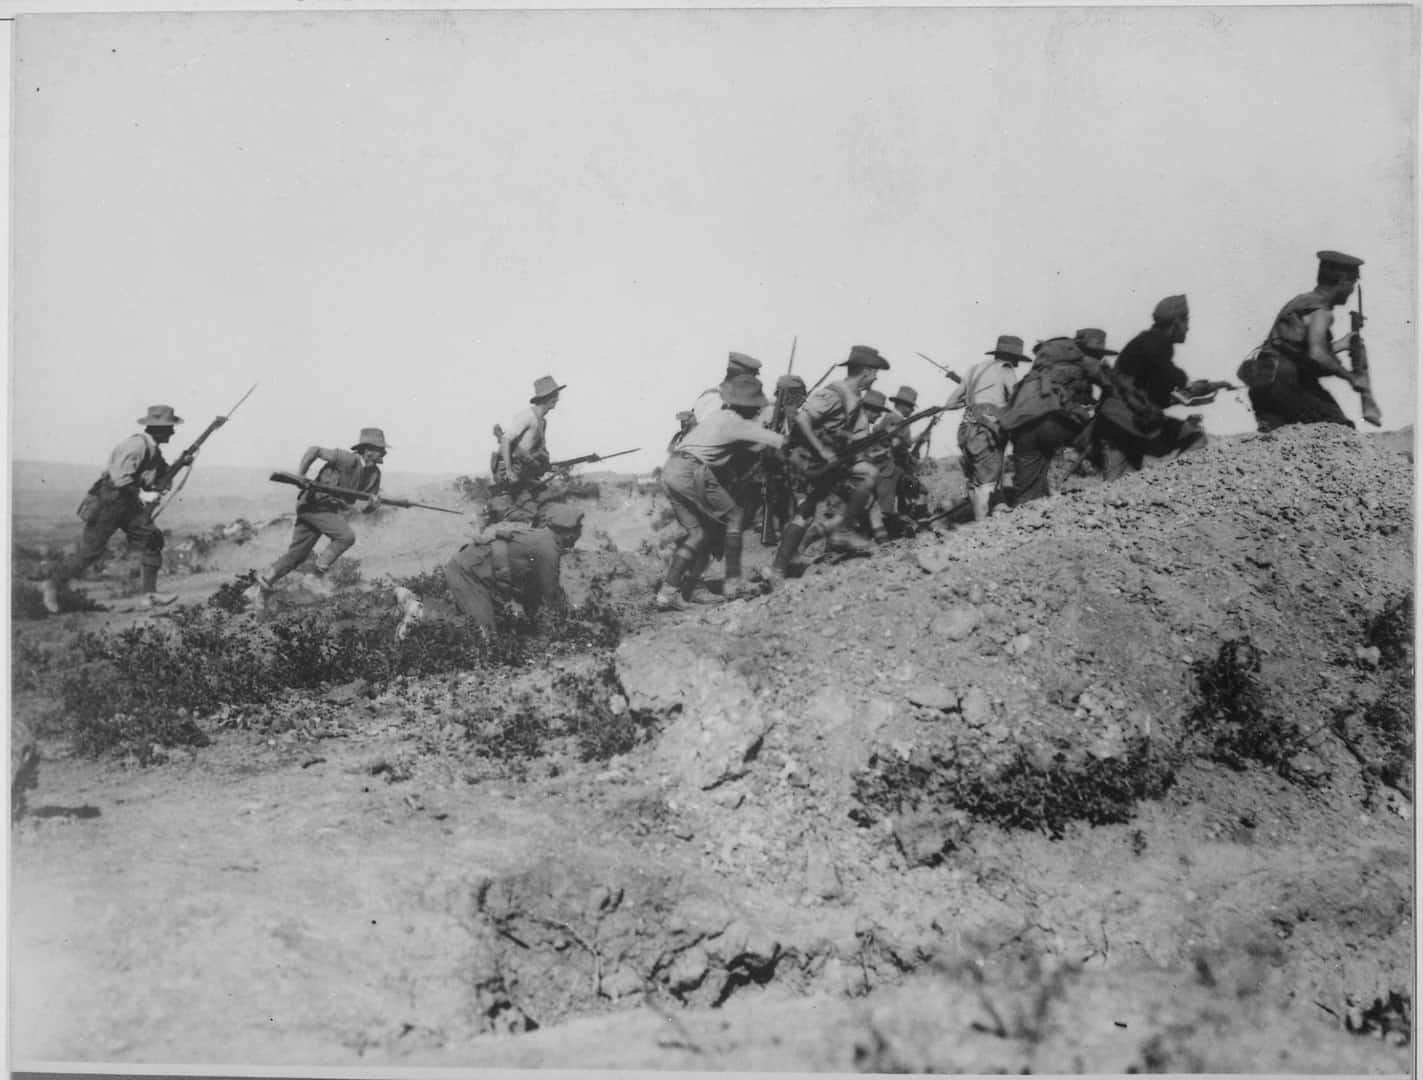 Australian troops charging Turkish lines during WW1, World War 1 facts, historical events facts